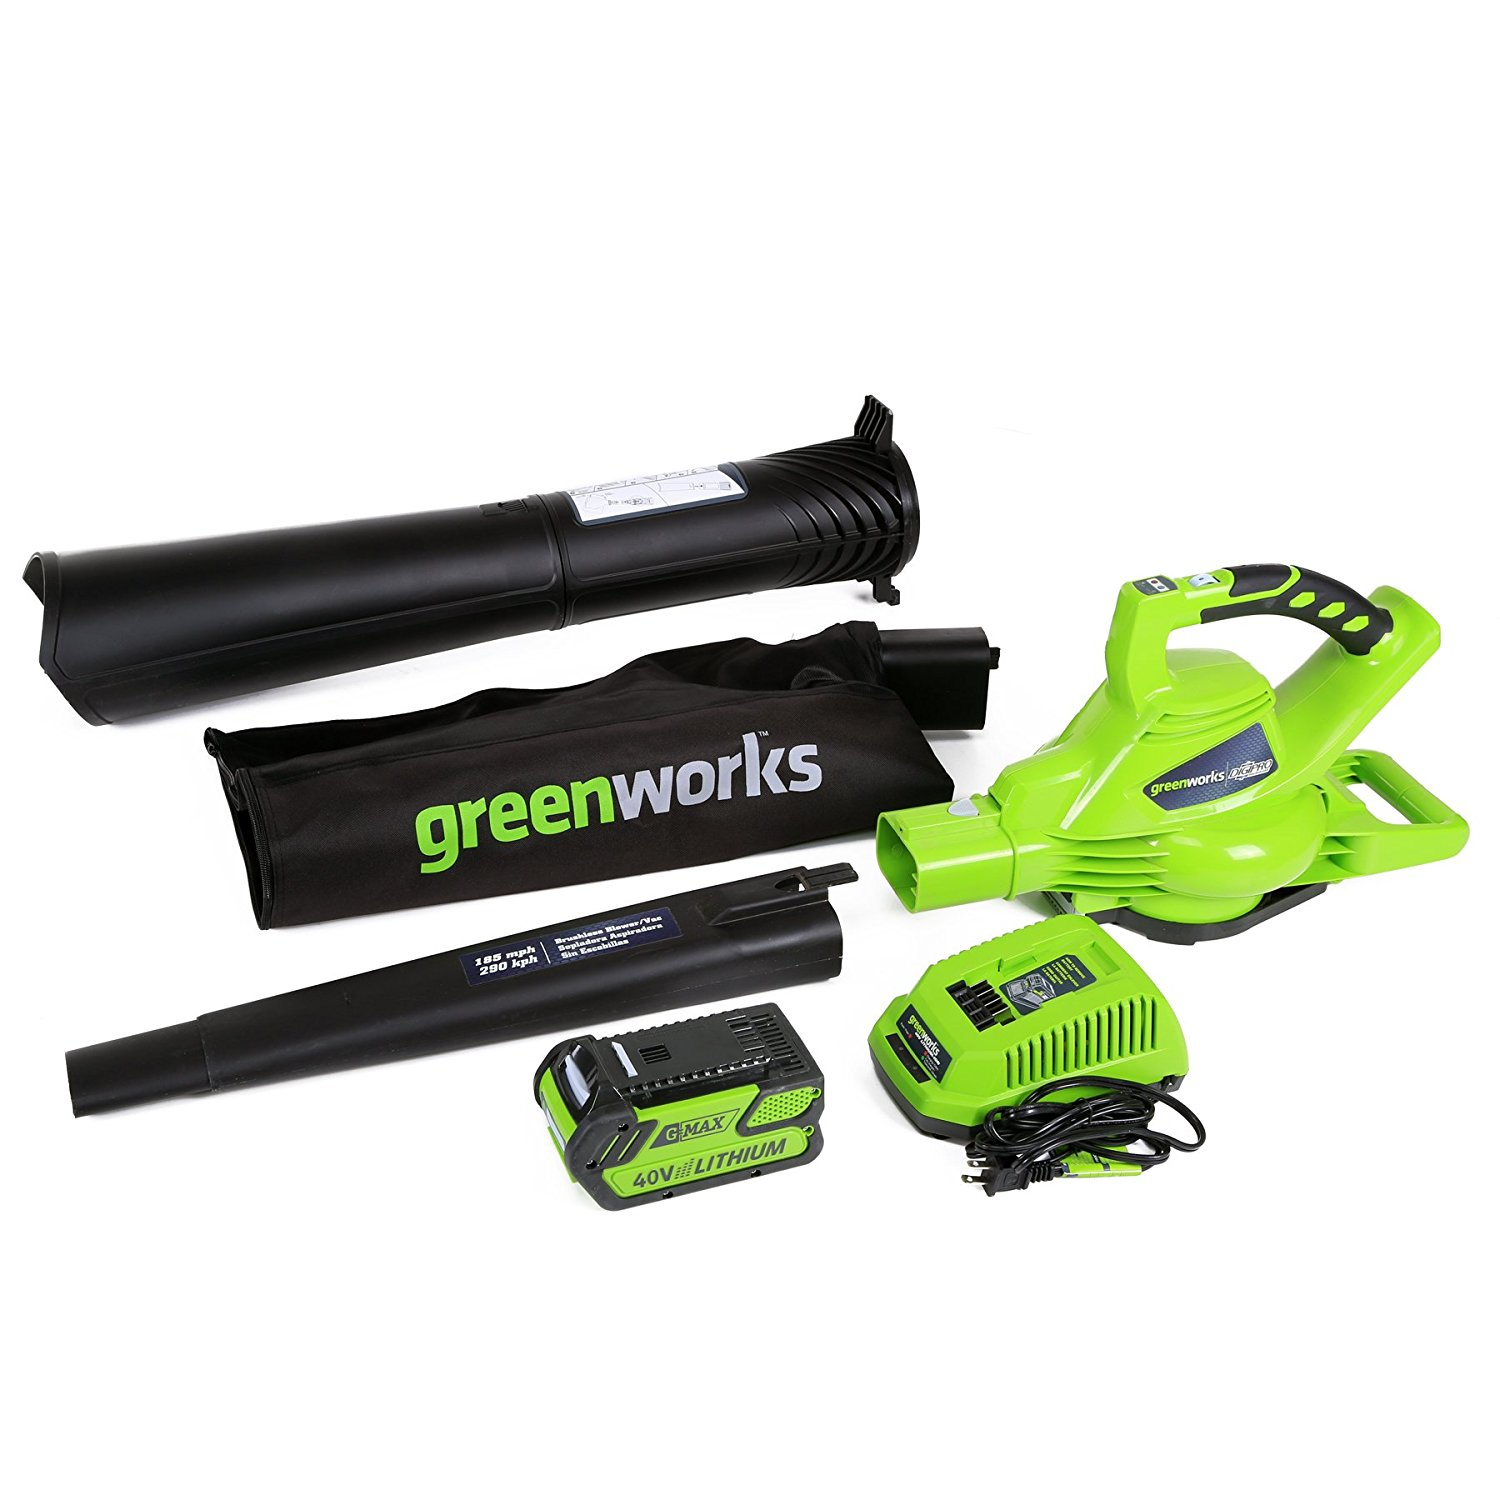 GreenWorks 24322 G-MAX 40V 185MPH Variable Speed Cordless Blower/Vac